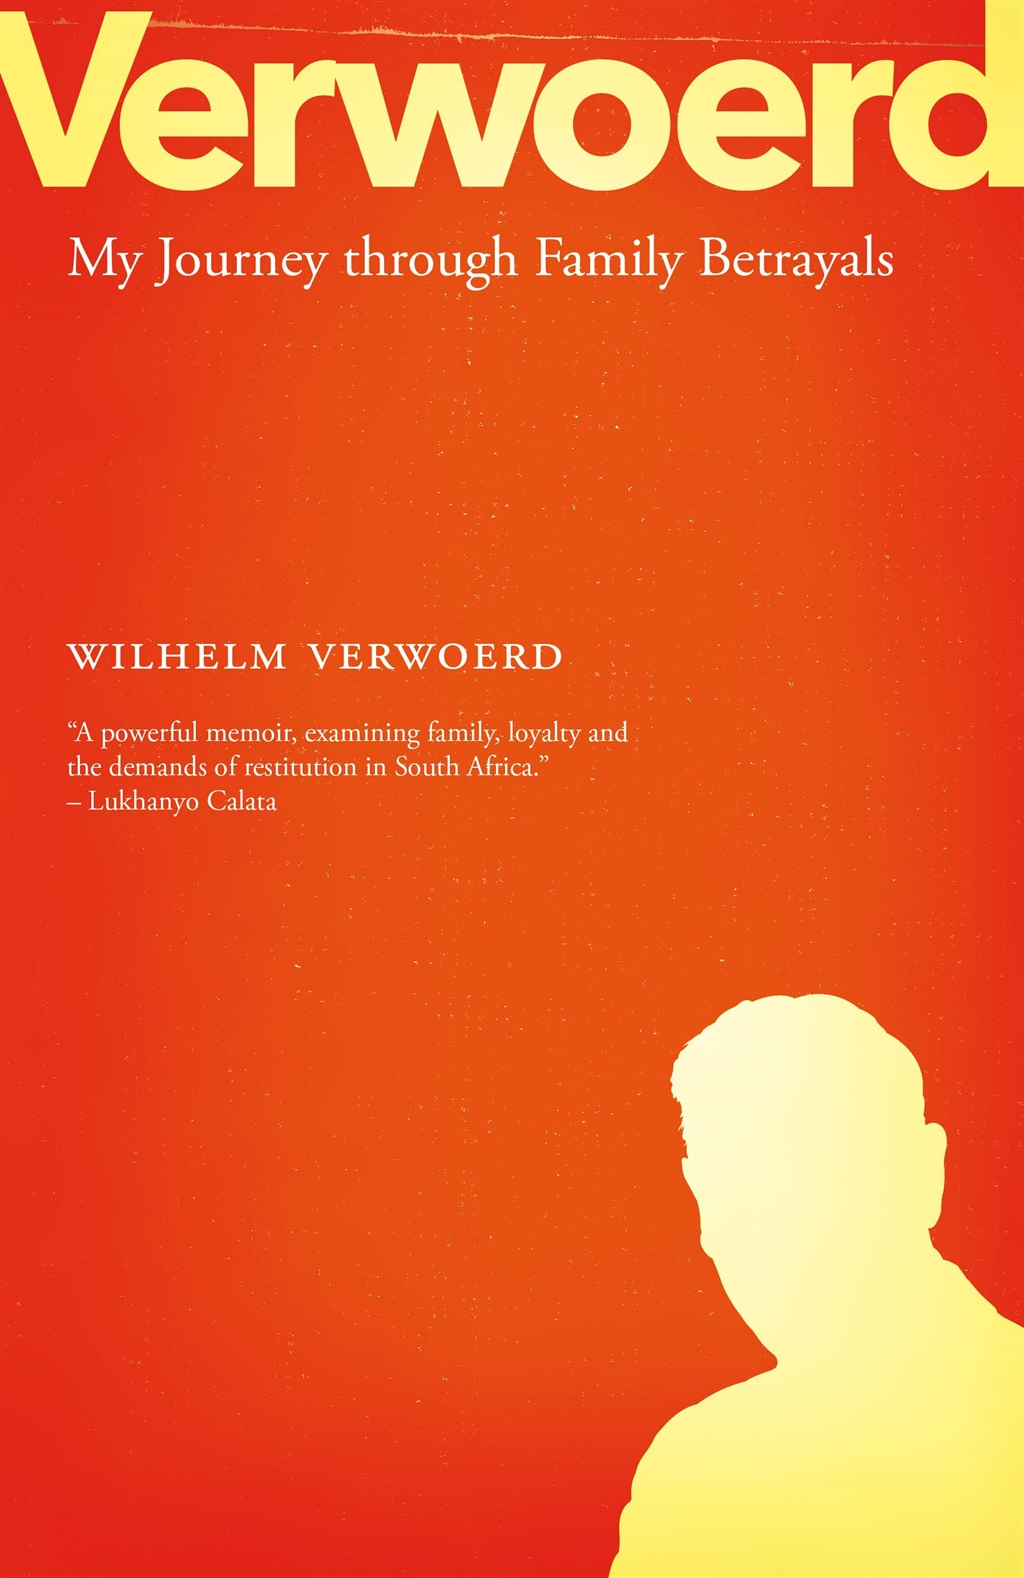 Verwoerd: My Journey through Family Betrayals written by Wilhelm Verwoerd, published by Tafelberg Publishers.